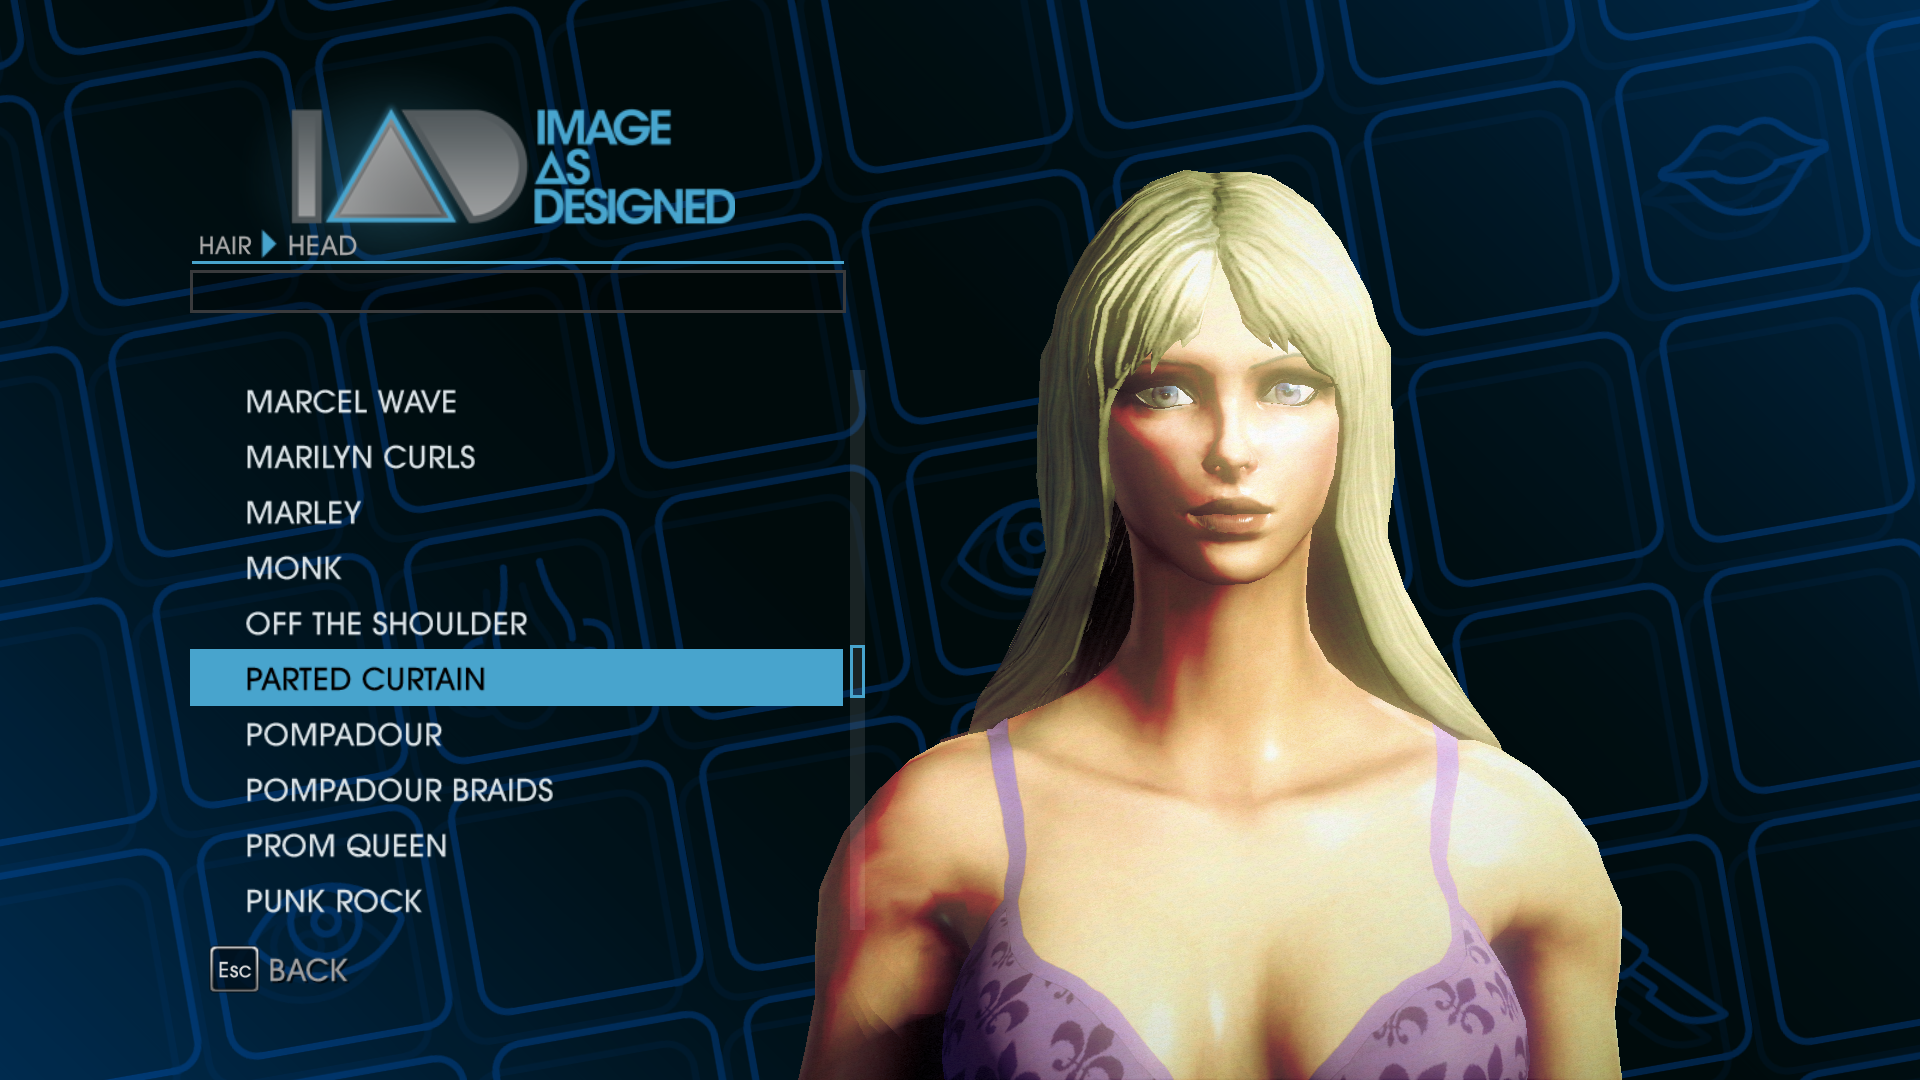 Pic 3dsexyimages pics saints row porn gallery